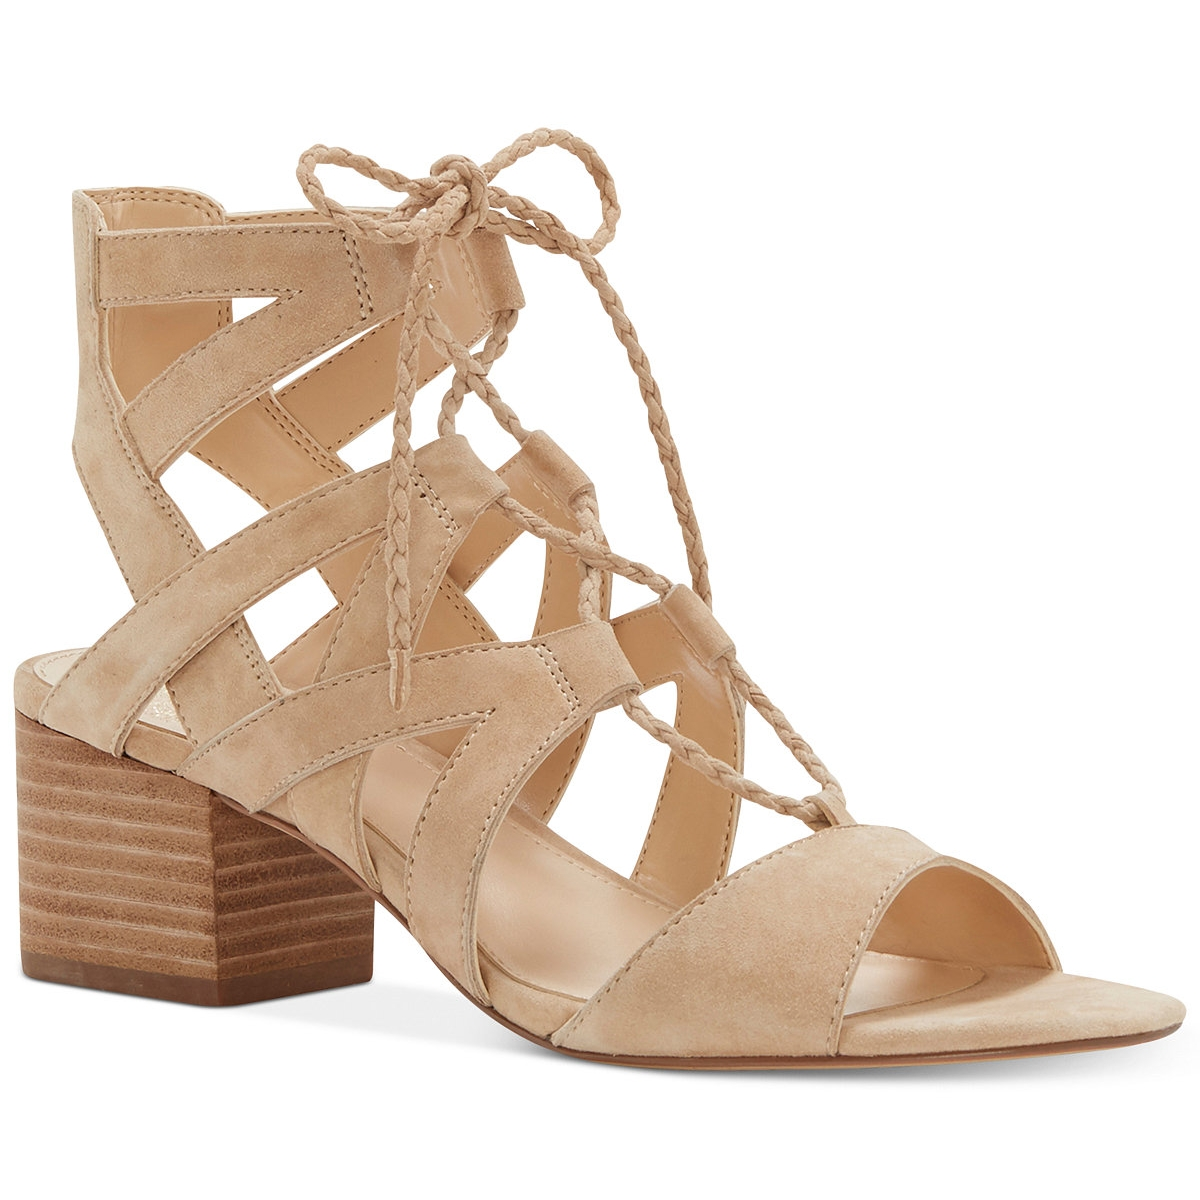 Vince Camuto - $119